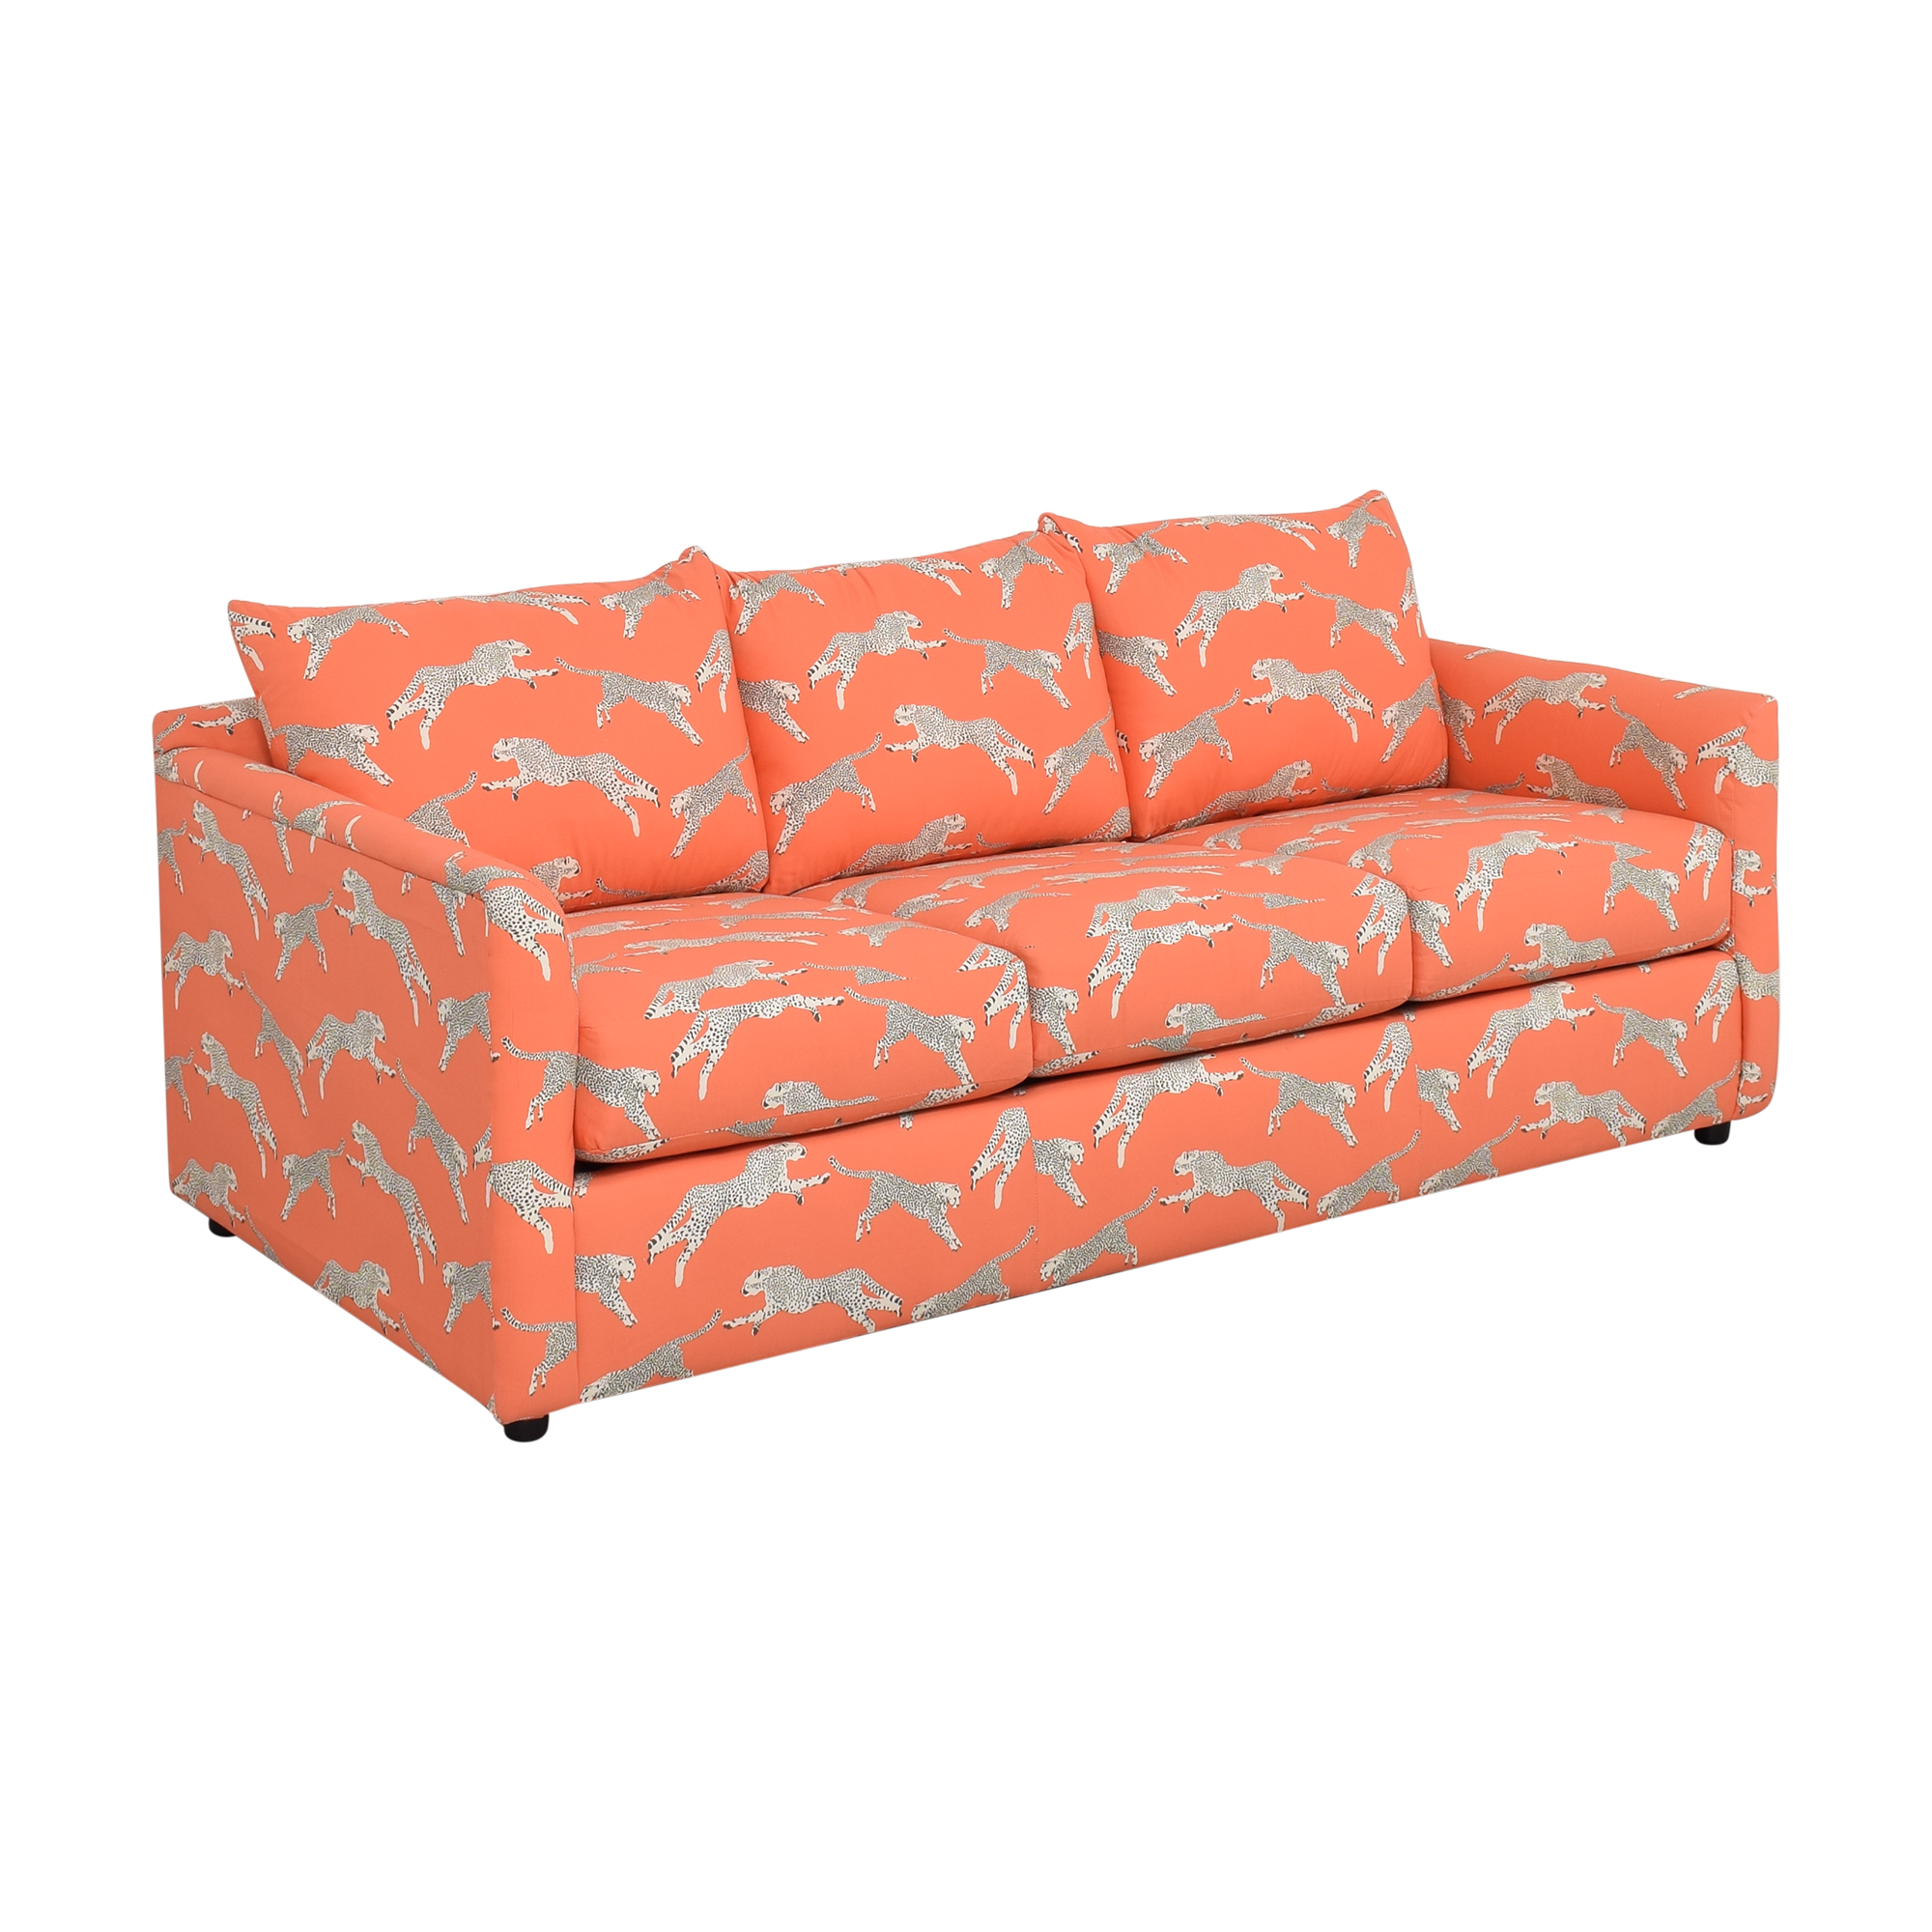 shop The Inside Tailored Sleeper Sofa in Coral Zebra by Scalamandré The Inside Sofas